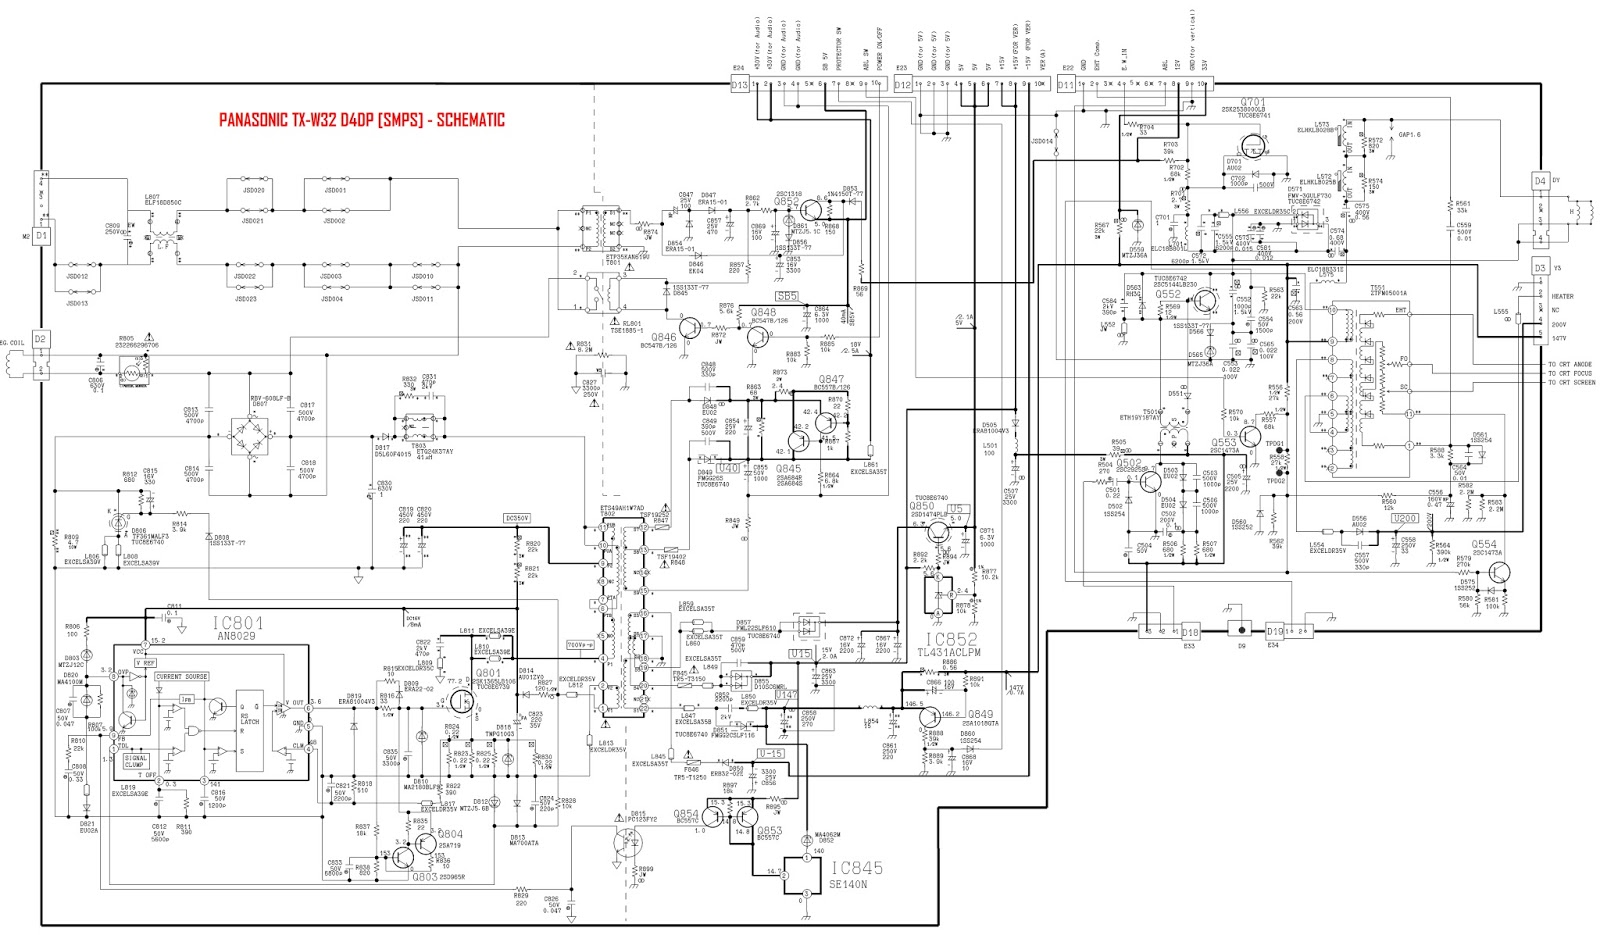 wiring diagrams for 2014 jeep wrangler the wiring diagram 2014 jeep wrangler stereo wiring harness 2014 car wiring diagram